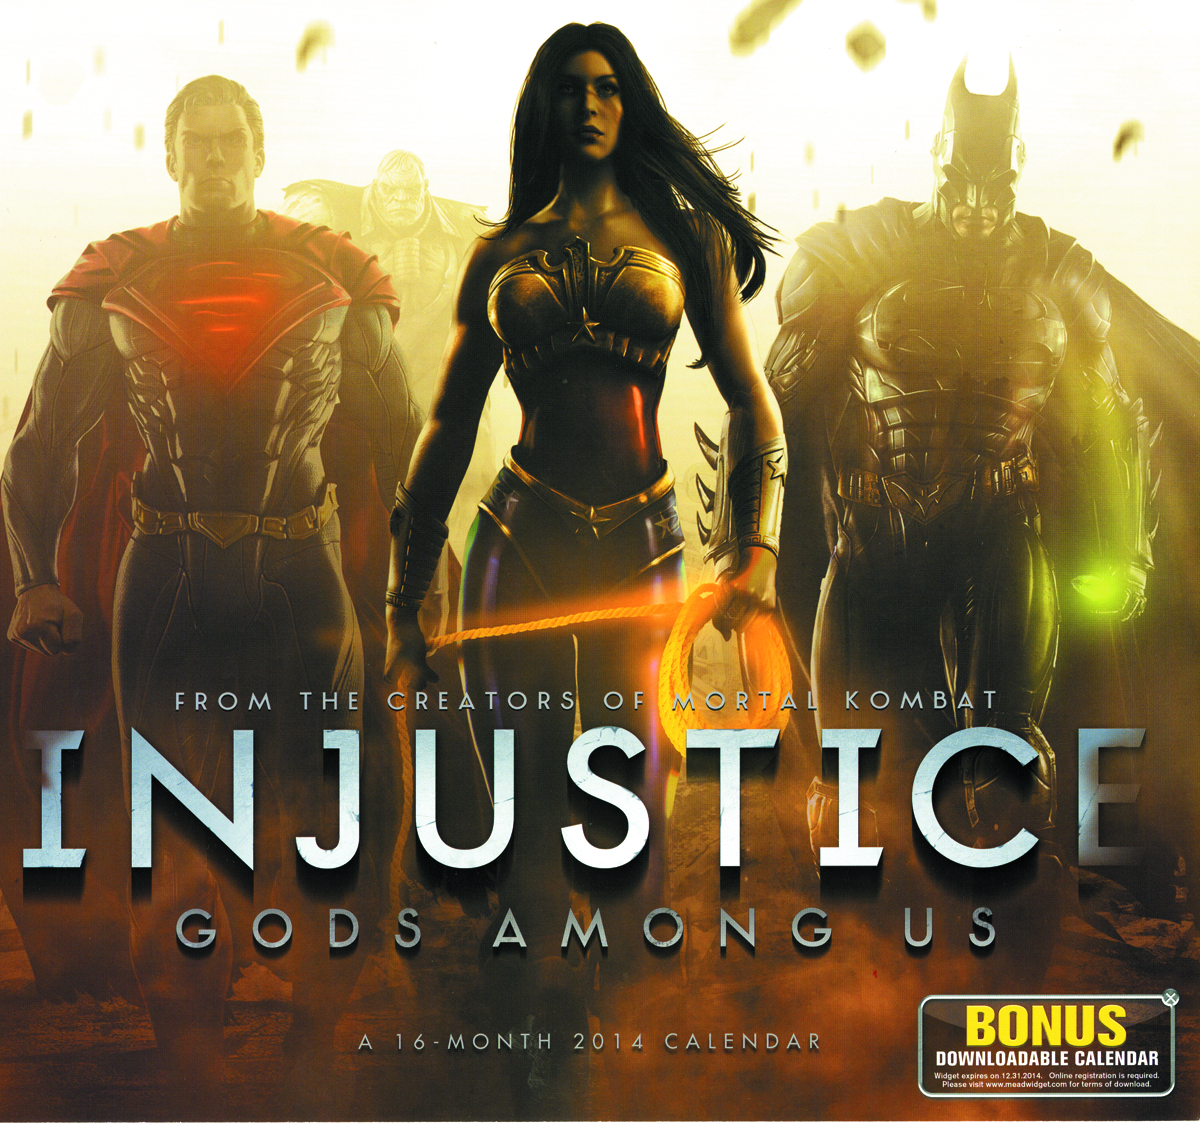 INJUSTICE 16 MONTH 2014 WALL CALENDAR